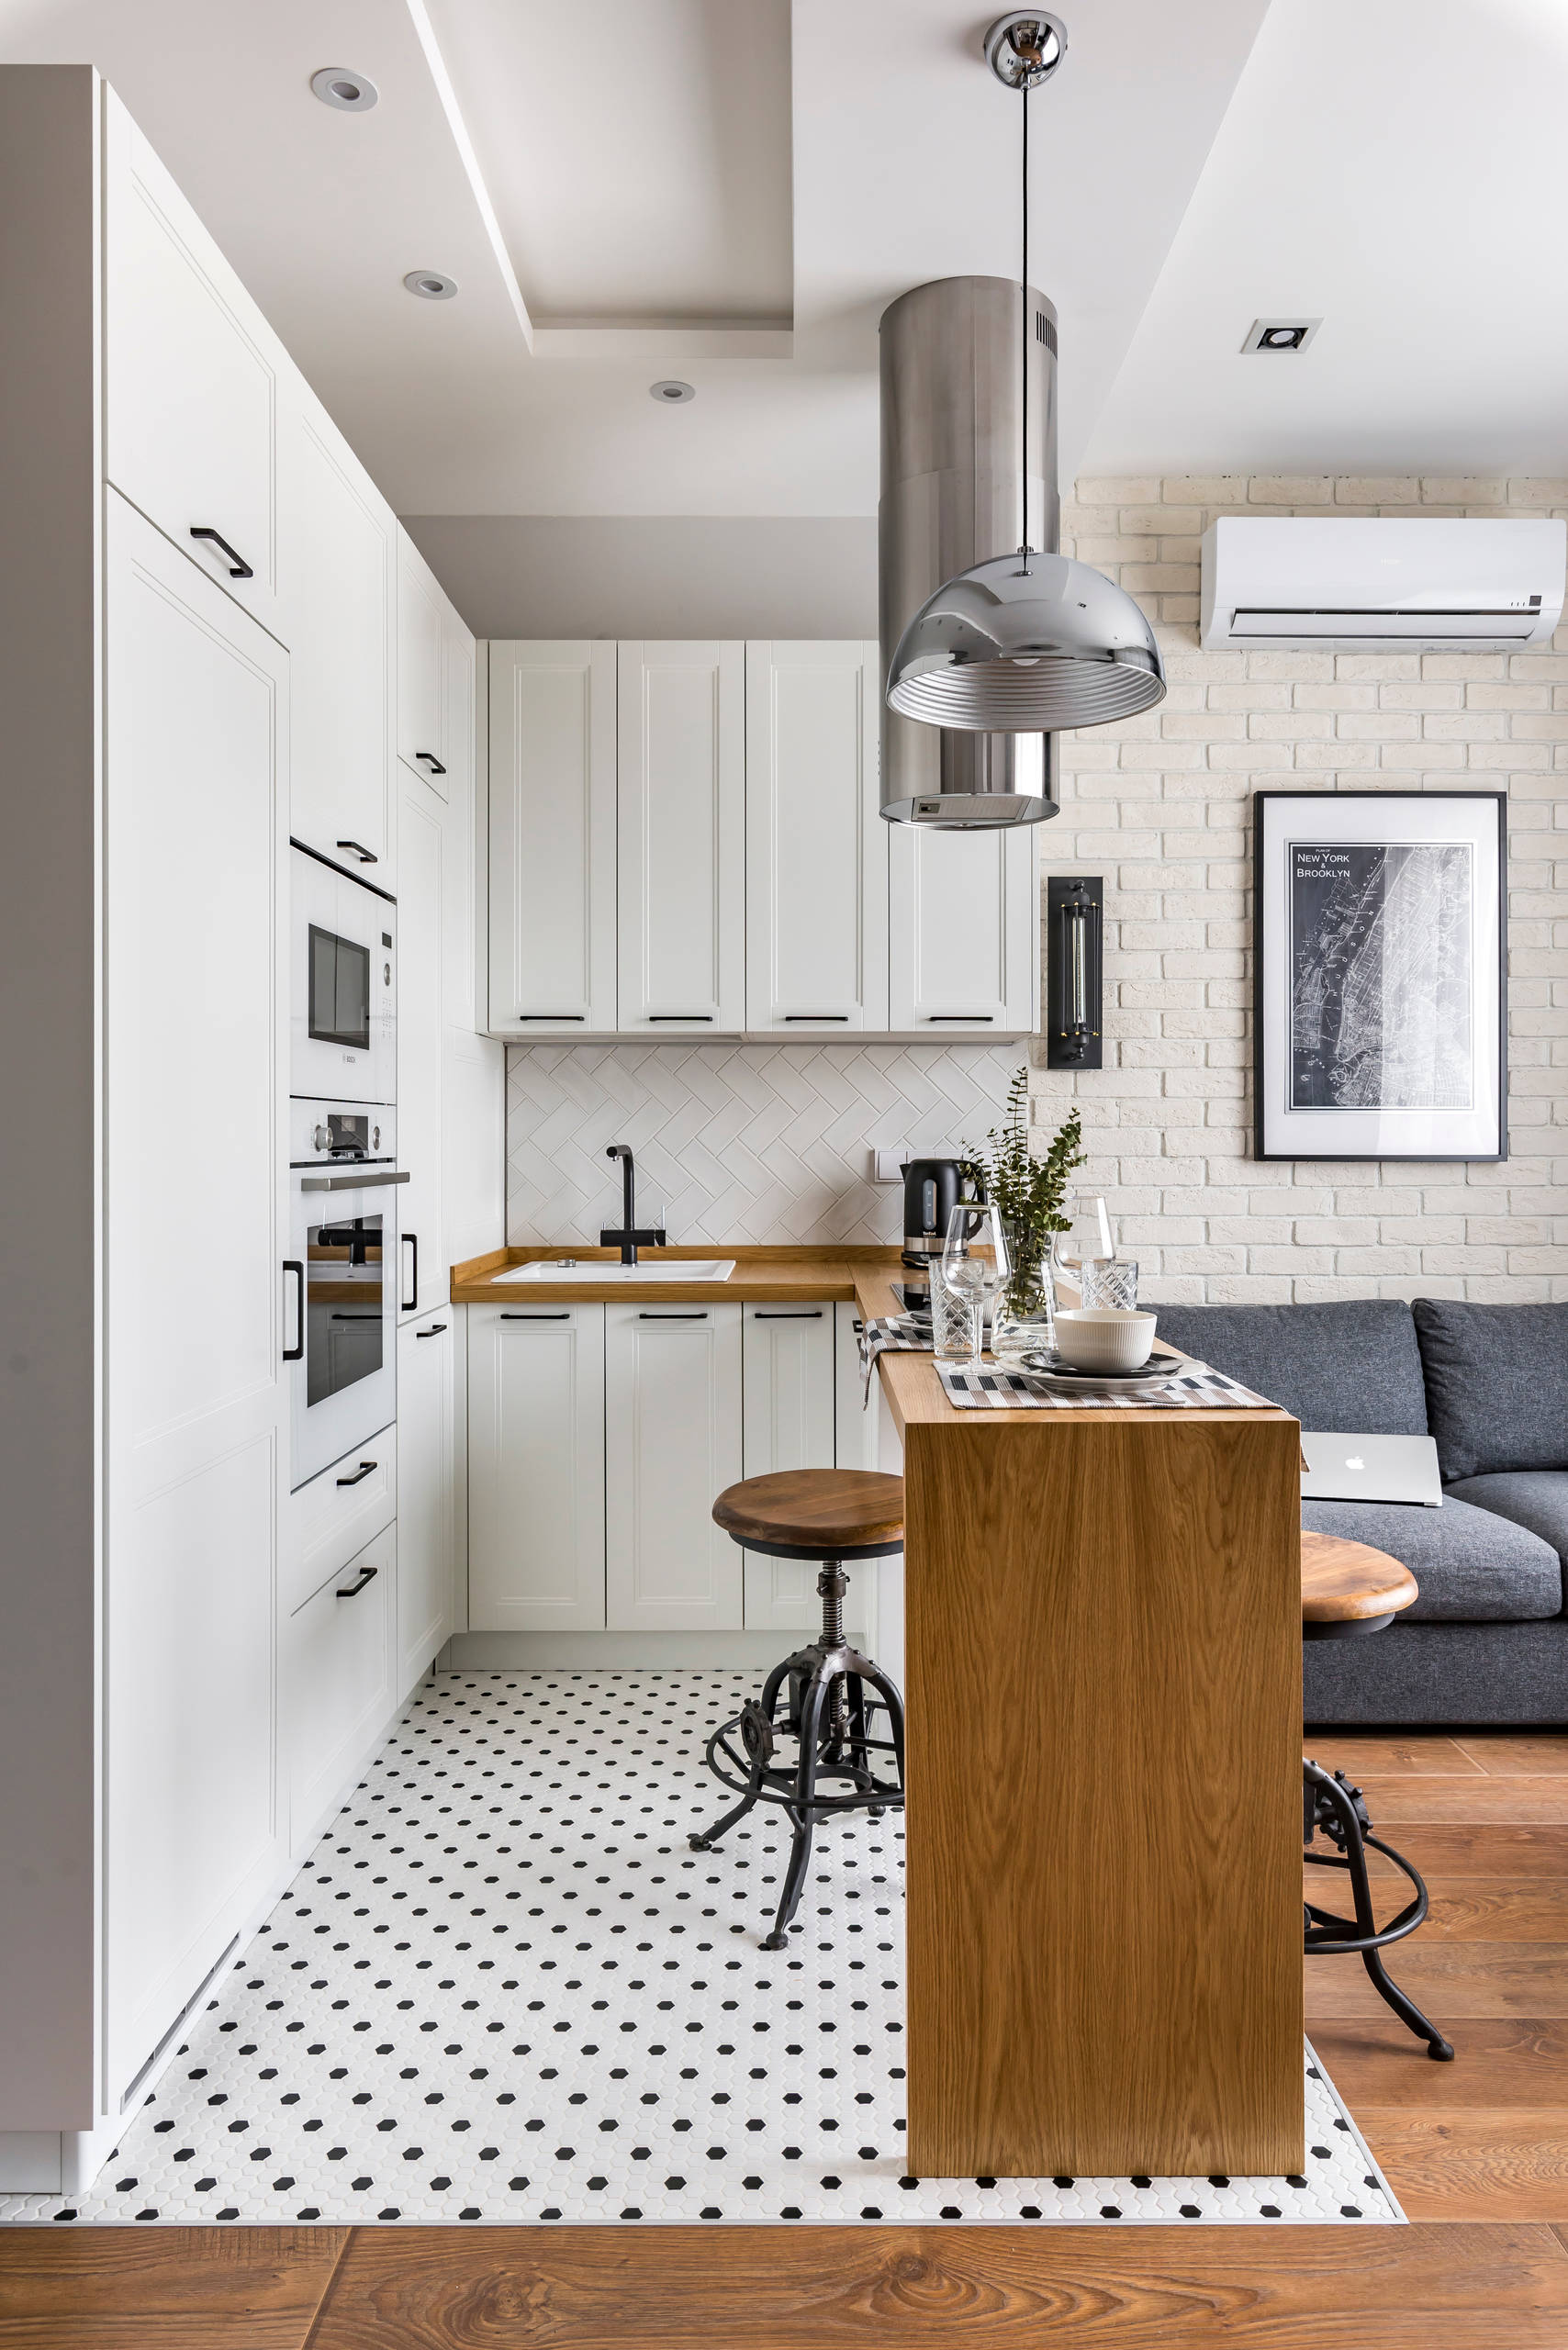 75 Beautiful Small Open Concept Kitchen Pictures Ideas January 2021 Houzz